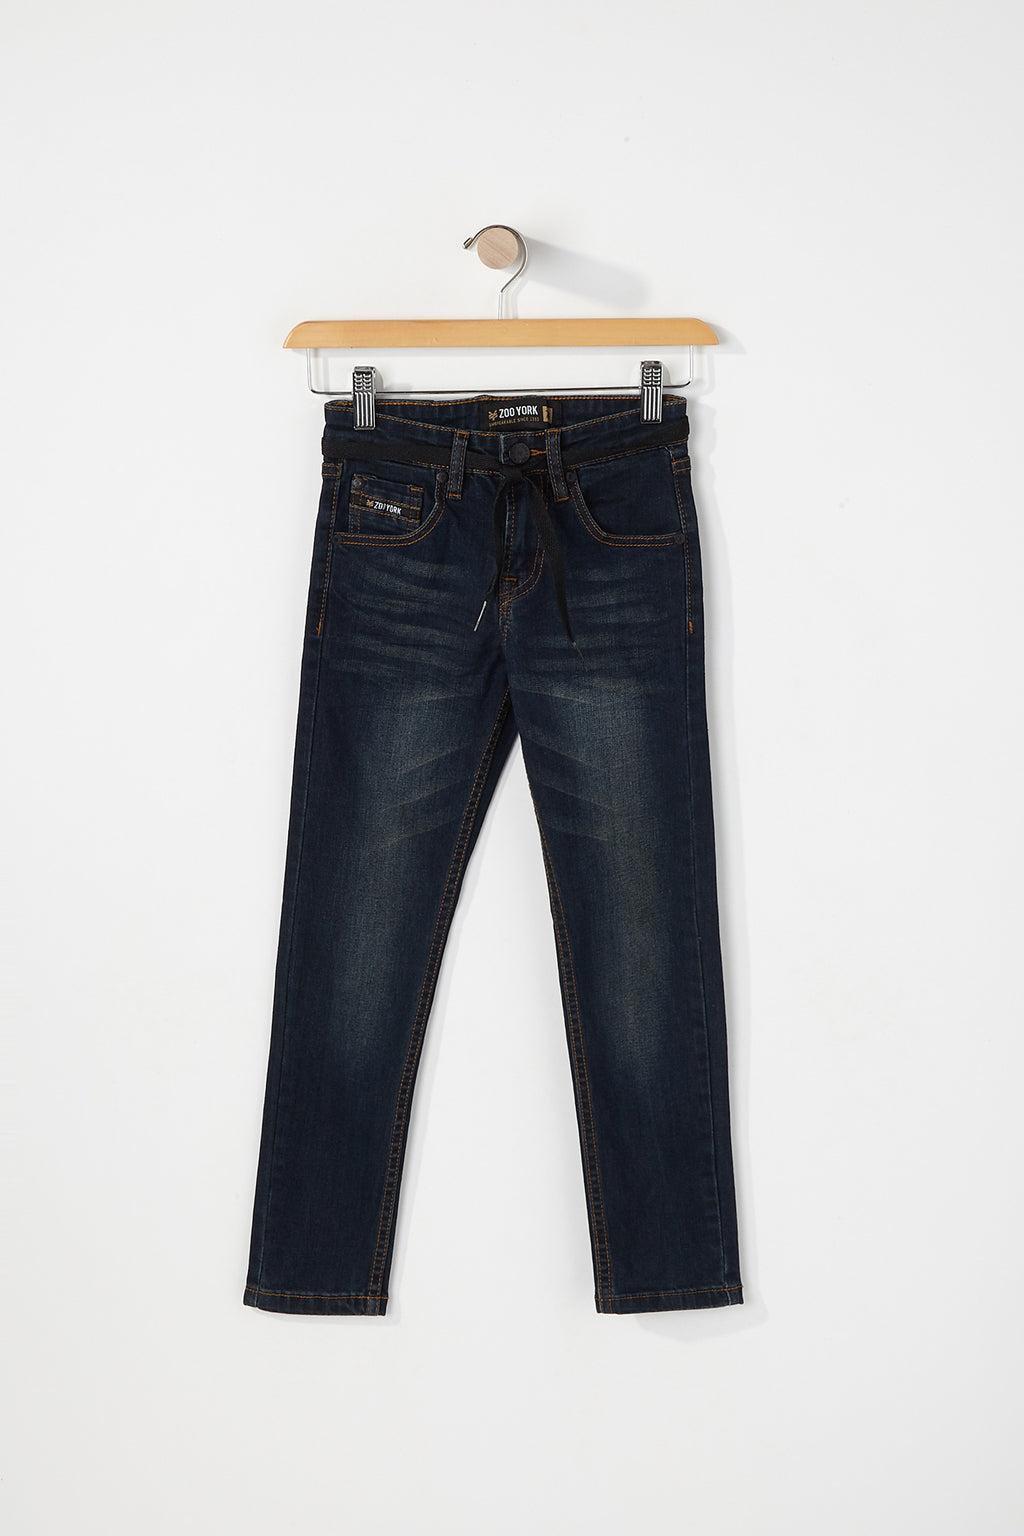 Zoo York Boys Dark Wash Skinniest Jeans